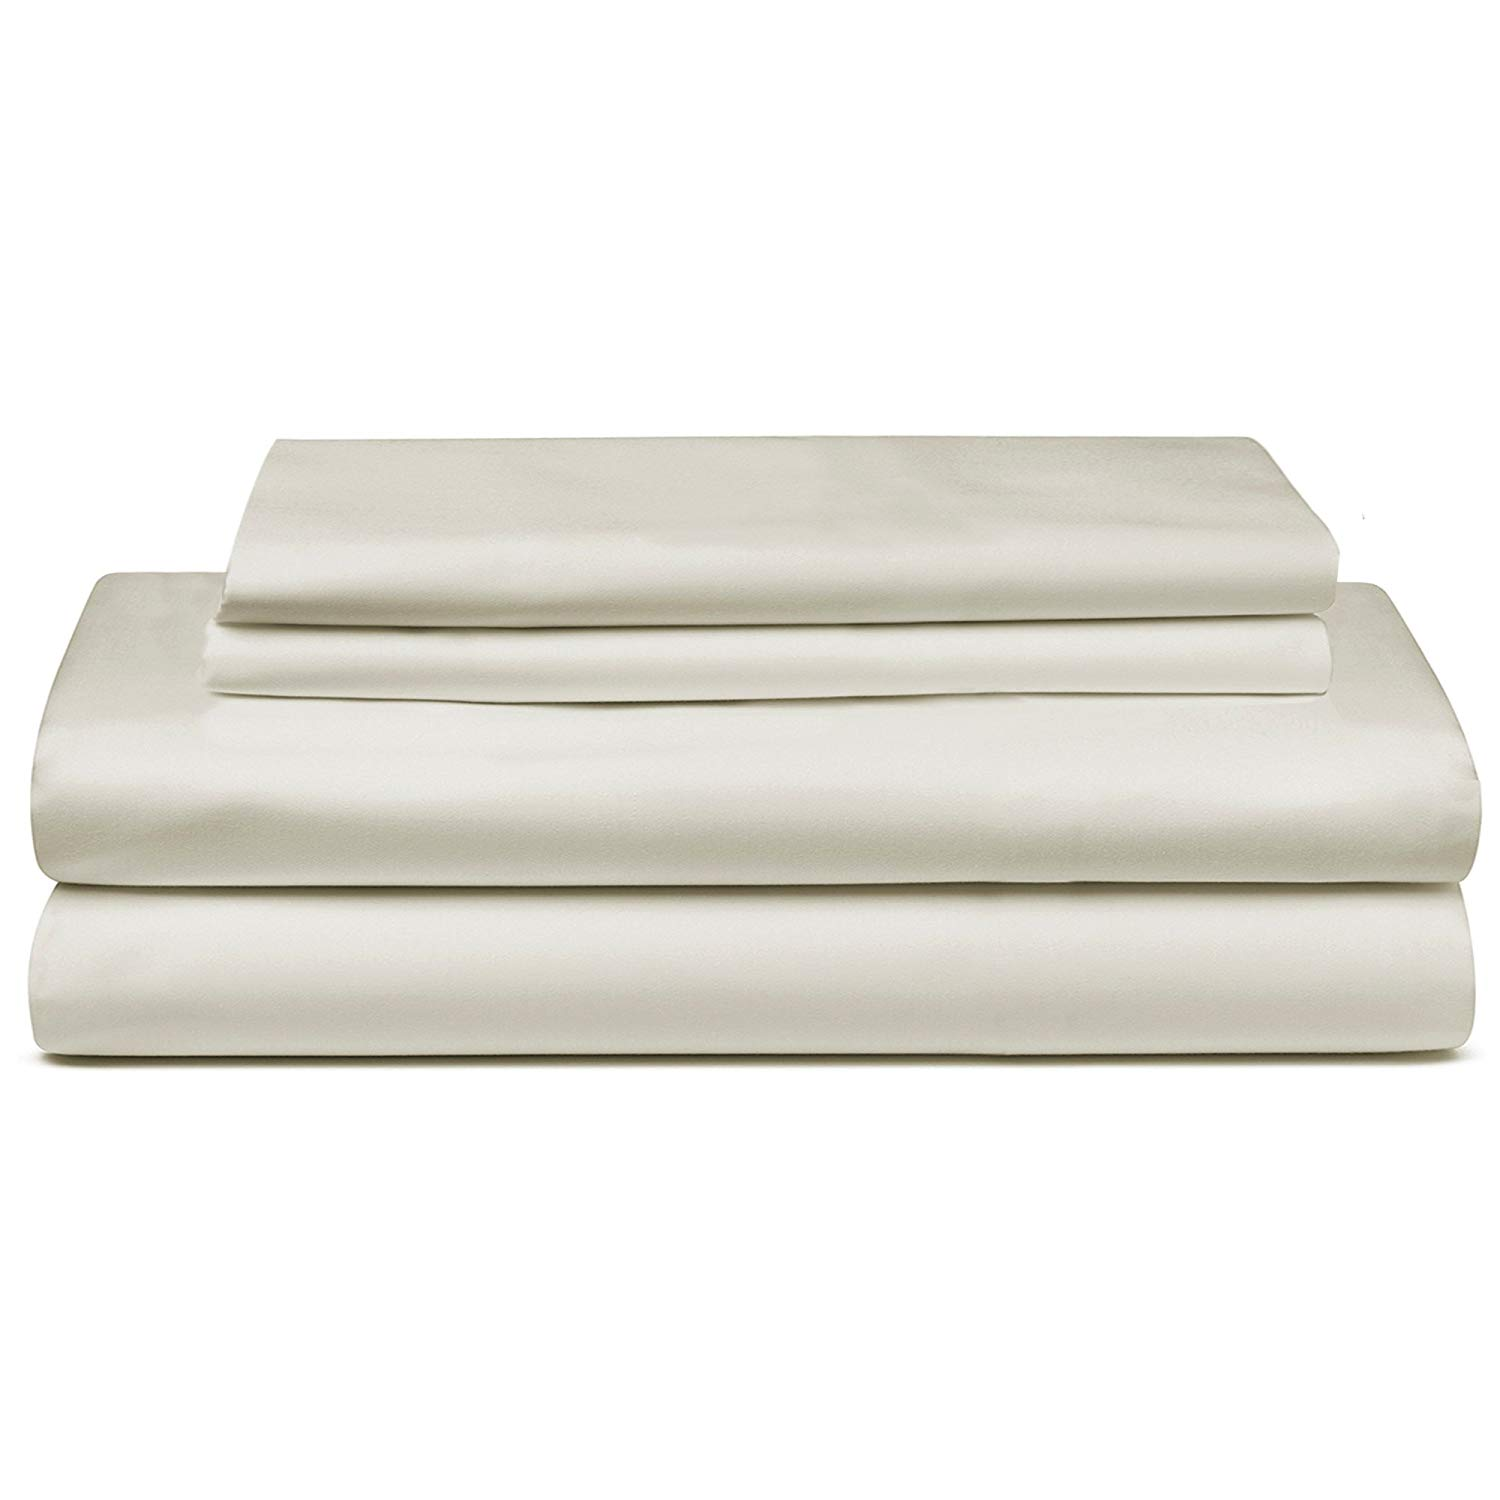 """Pinnacle Homes 300 Thread Count 100% Long Staple Soft Cotton Sheet Set, 4 Piece Set,Queen Sheets, Soft Smooth Sateen Weave, Hotel Quality Bestselling Sheet, 16"""" Deep Pocket, Luxury Bedding, Taupe"""